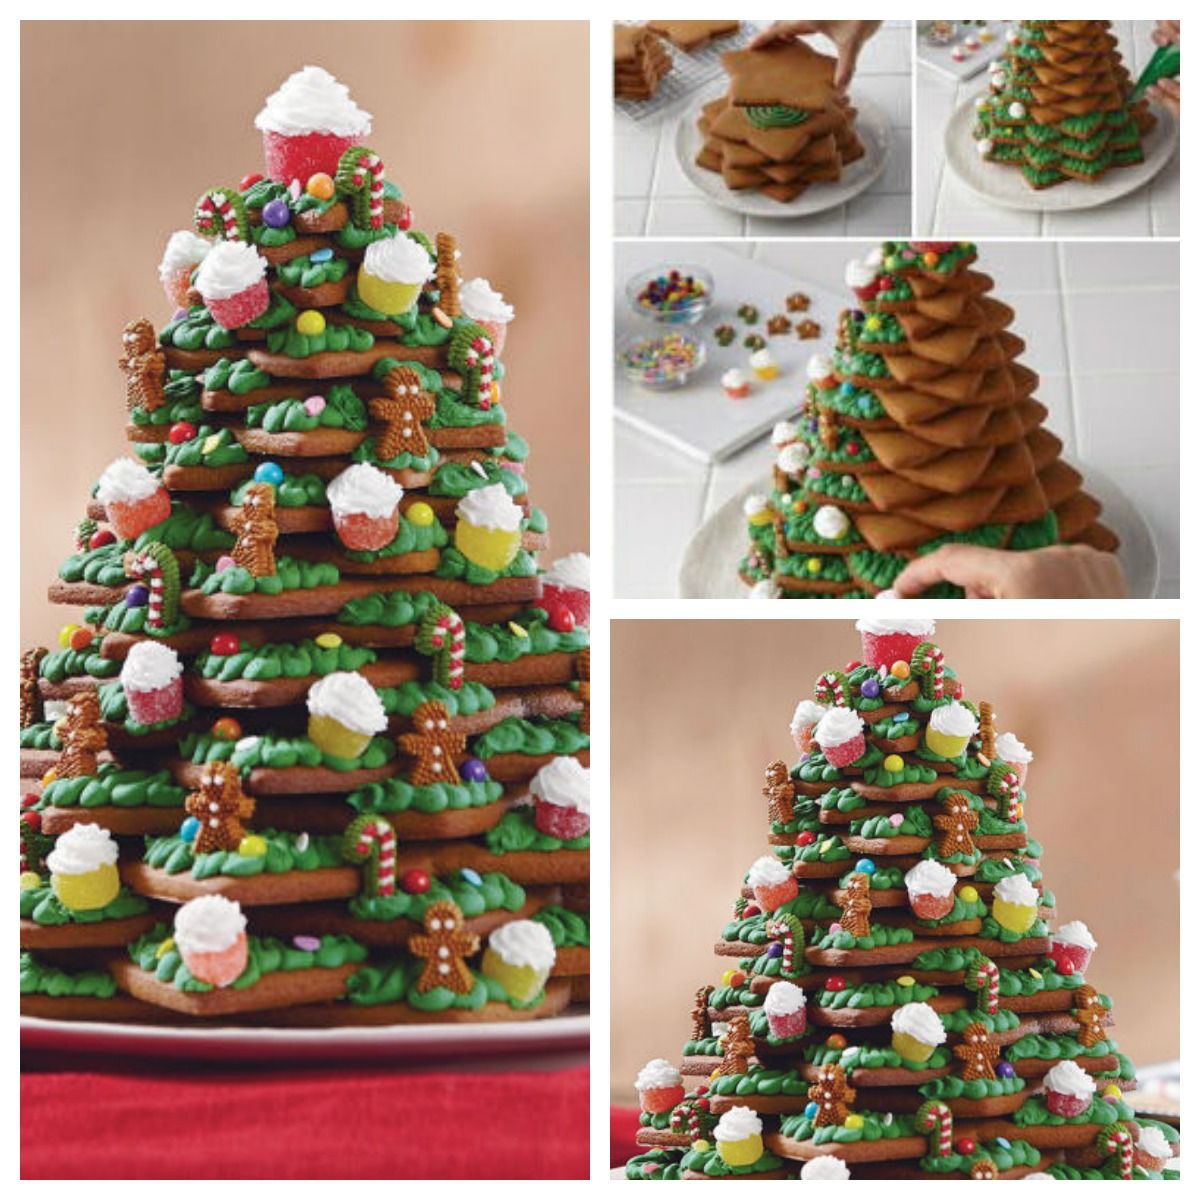 Diy Christmas Tree Cookies Pictures Photos And Images For Facebook